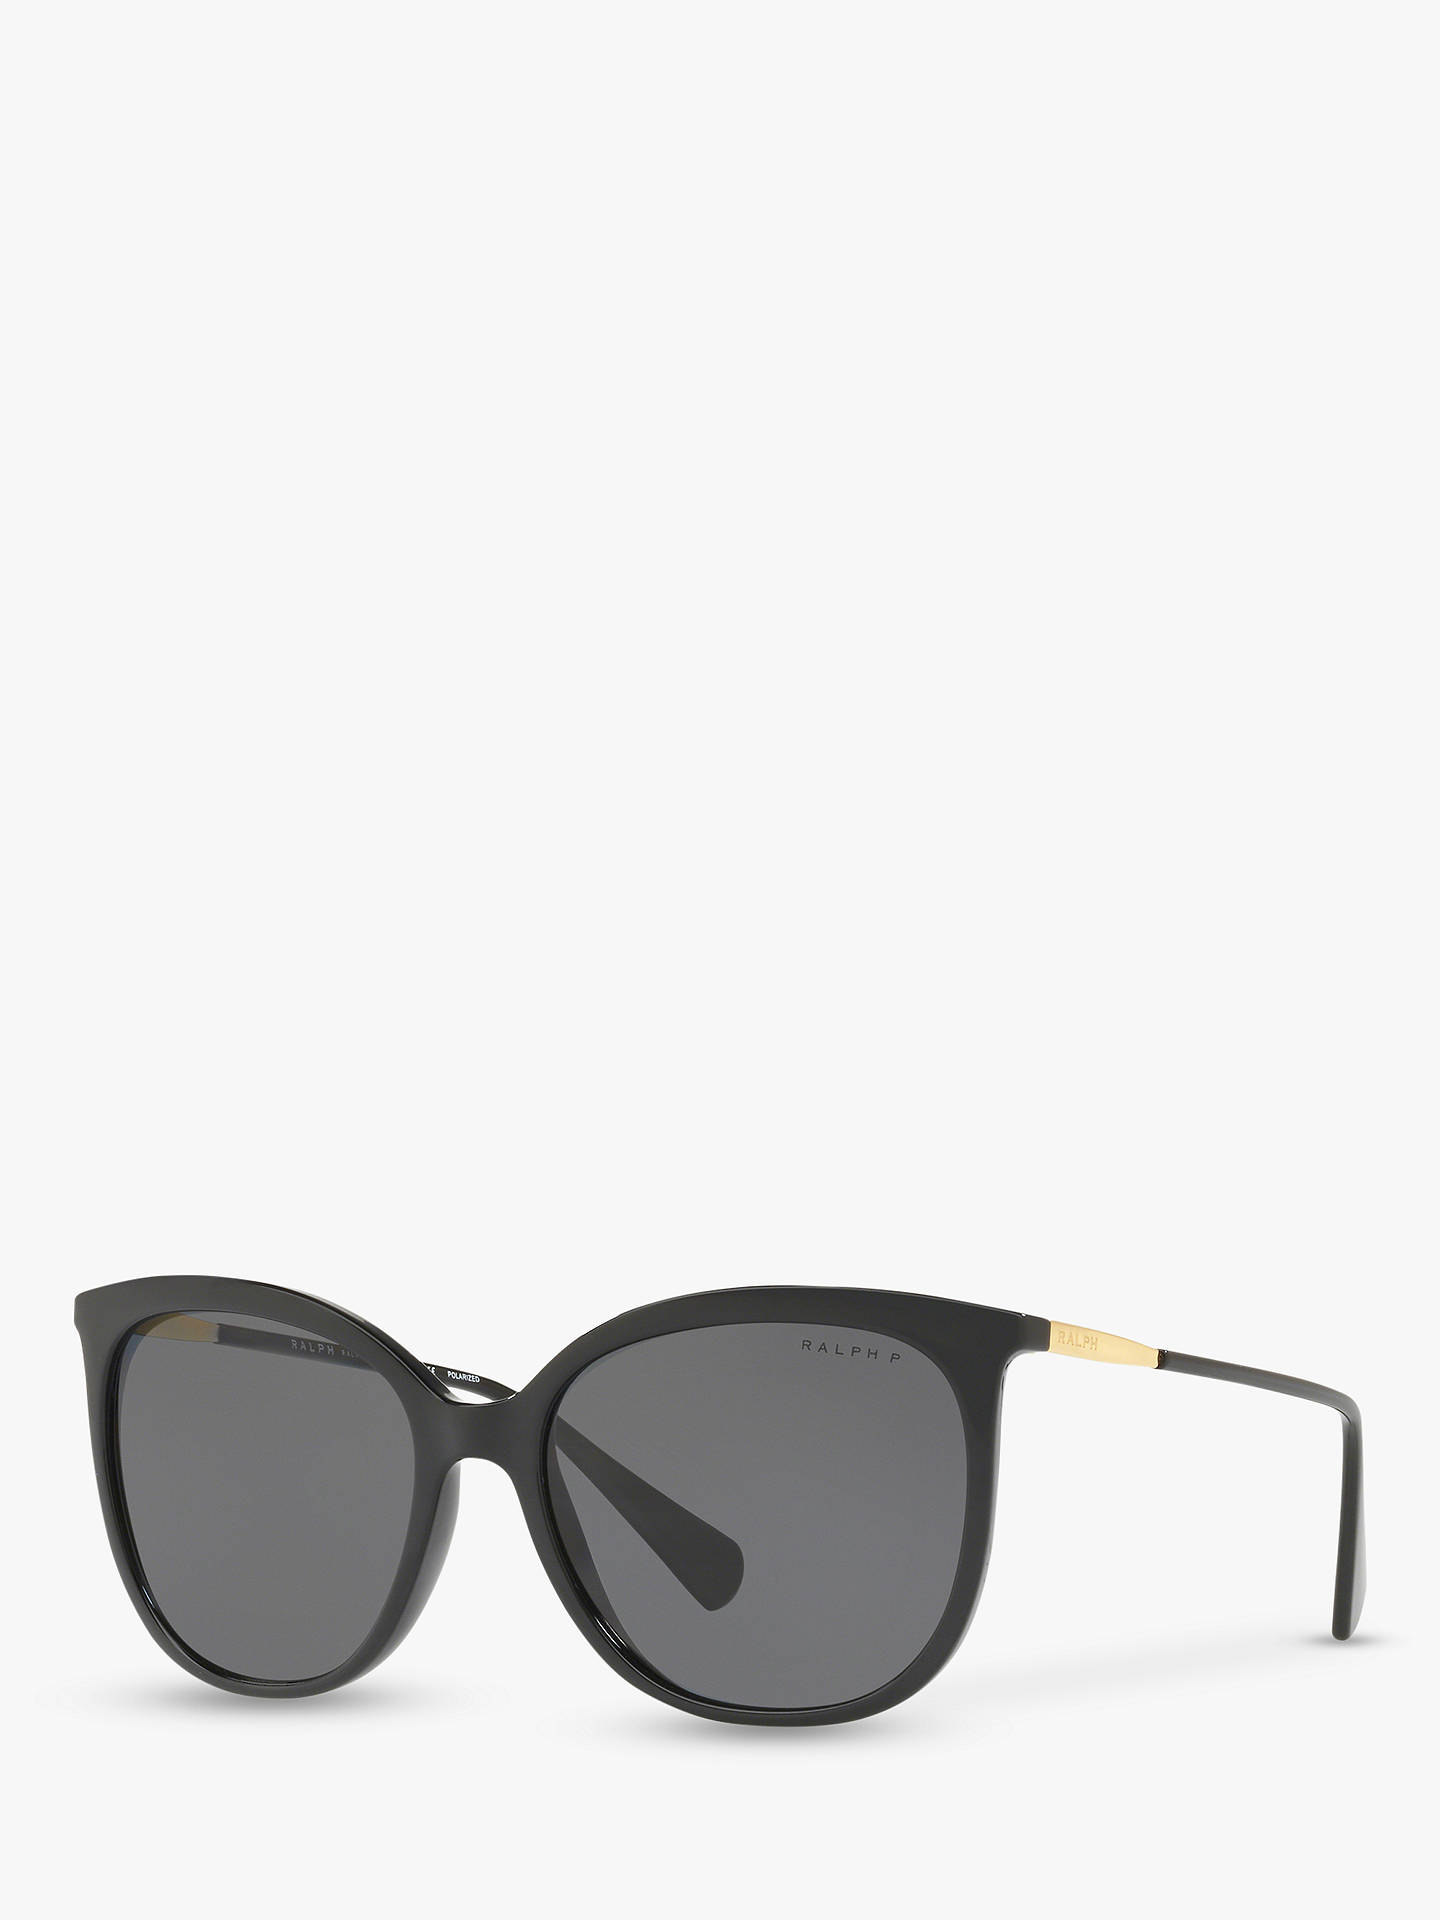 1127b1ac8734 Buy Polo Ralph Lauren RA5248 Women's Butterfly Sunglasses, Black/Grey  Polarised Online at johnlewis ...